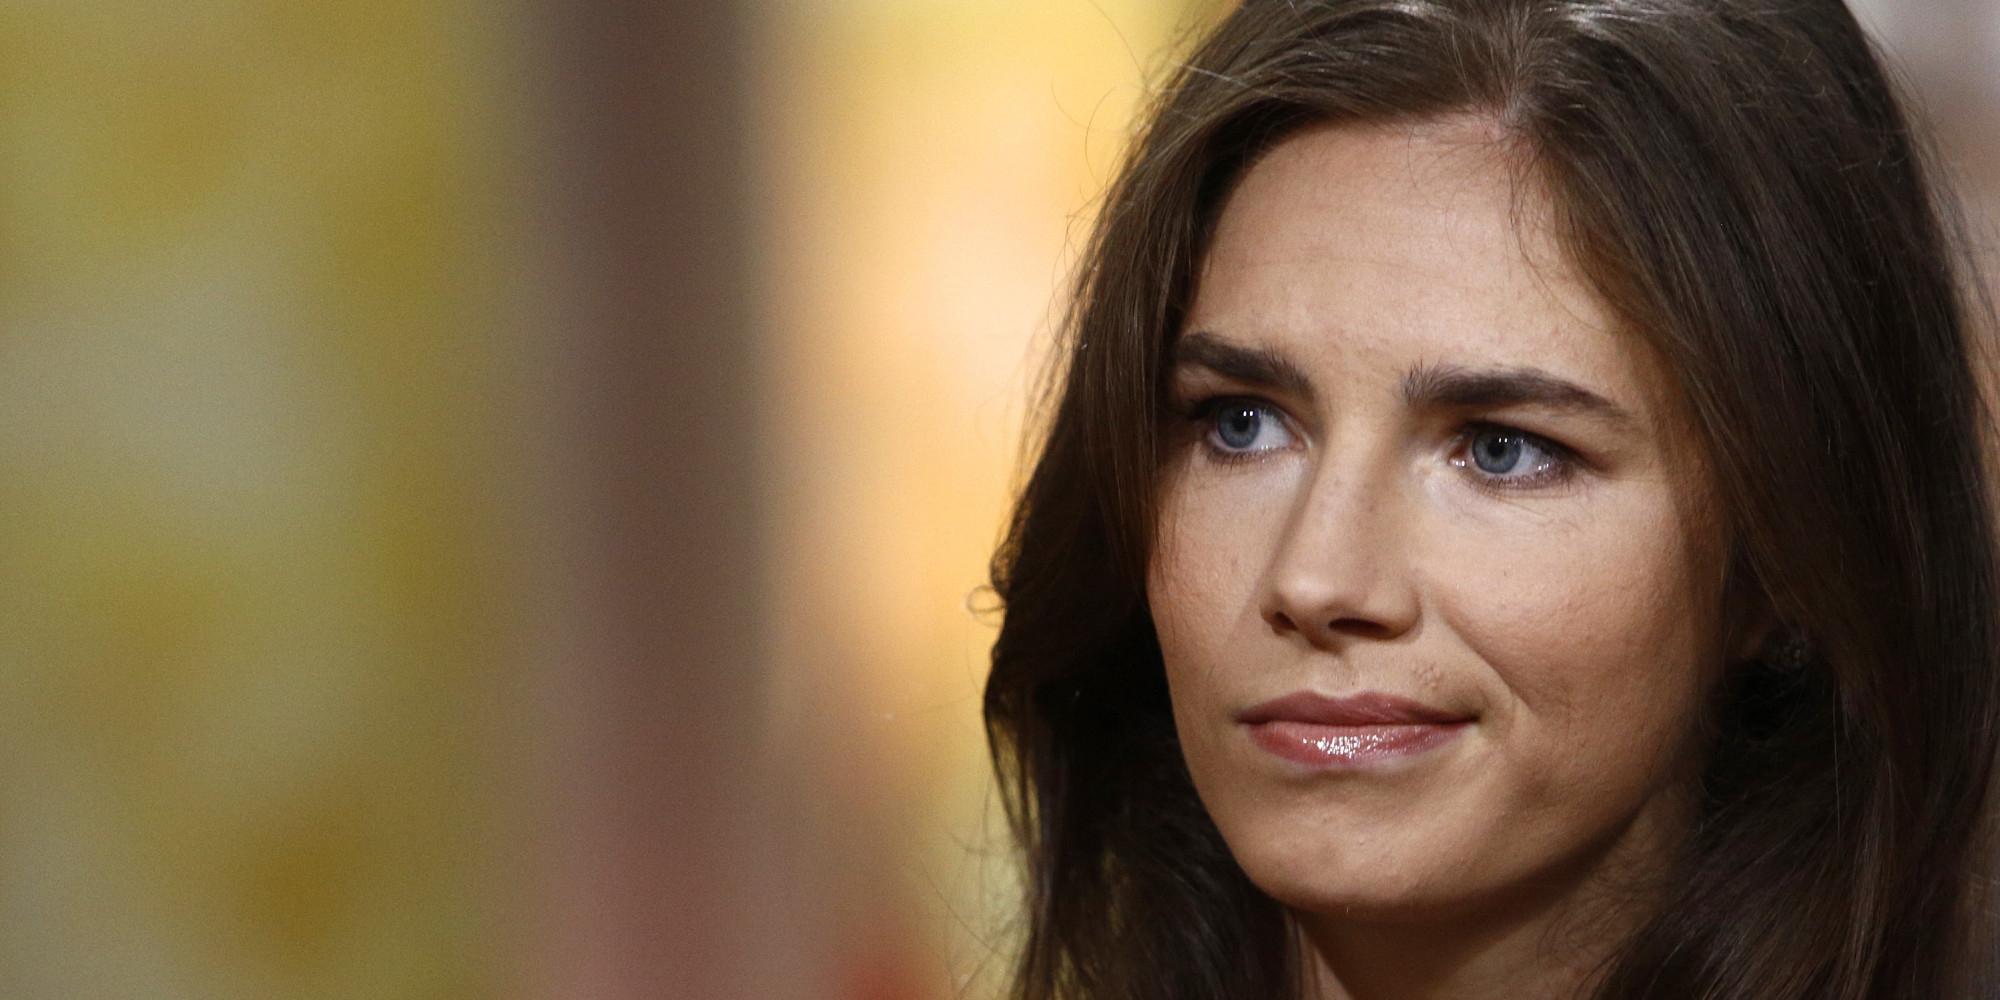 The 30-year old daughter of father Curt Knox and mother Edda Mellas, 163 cm tall Amanda Knox in 2017 photo